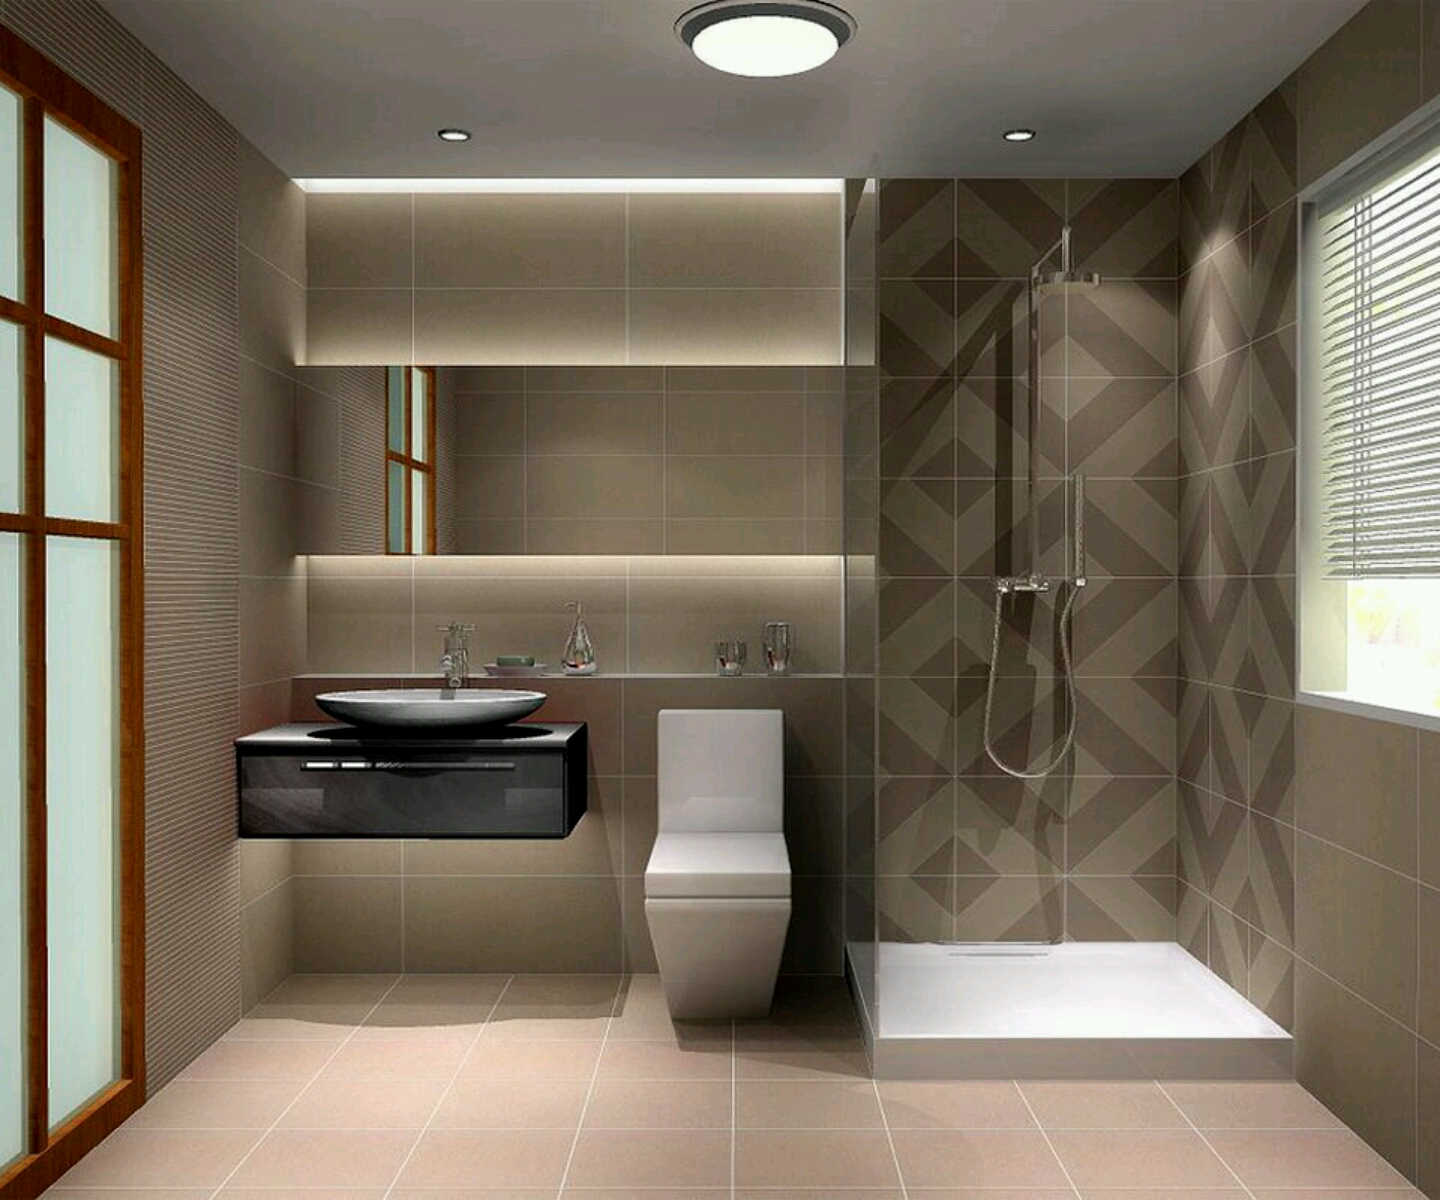 Modern bathrooms designs pictures furniture gallery for Small modern bathroom designs 2012